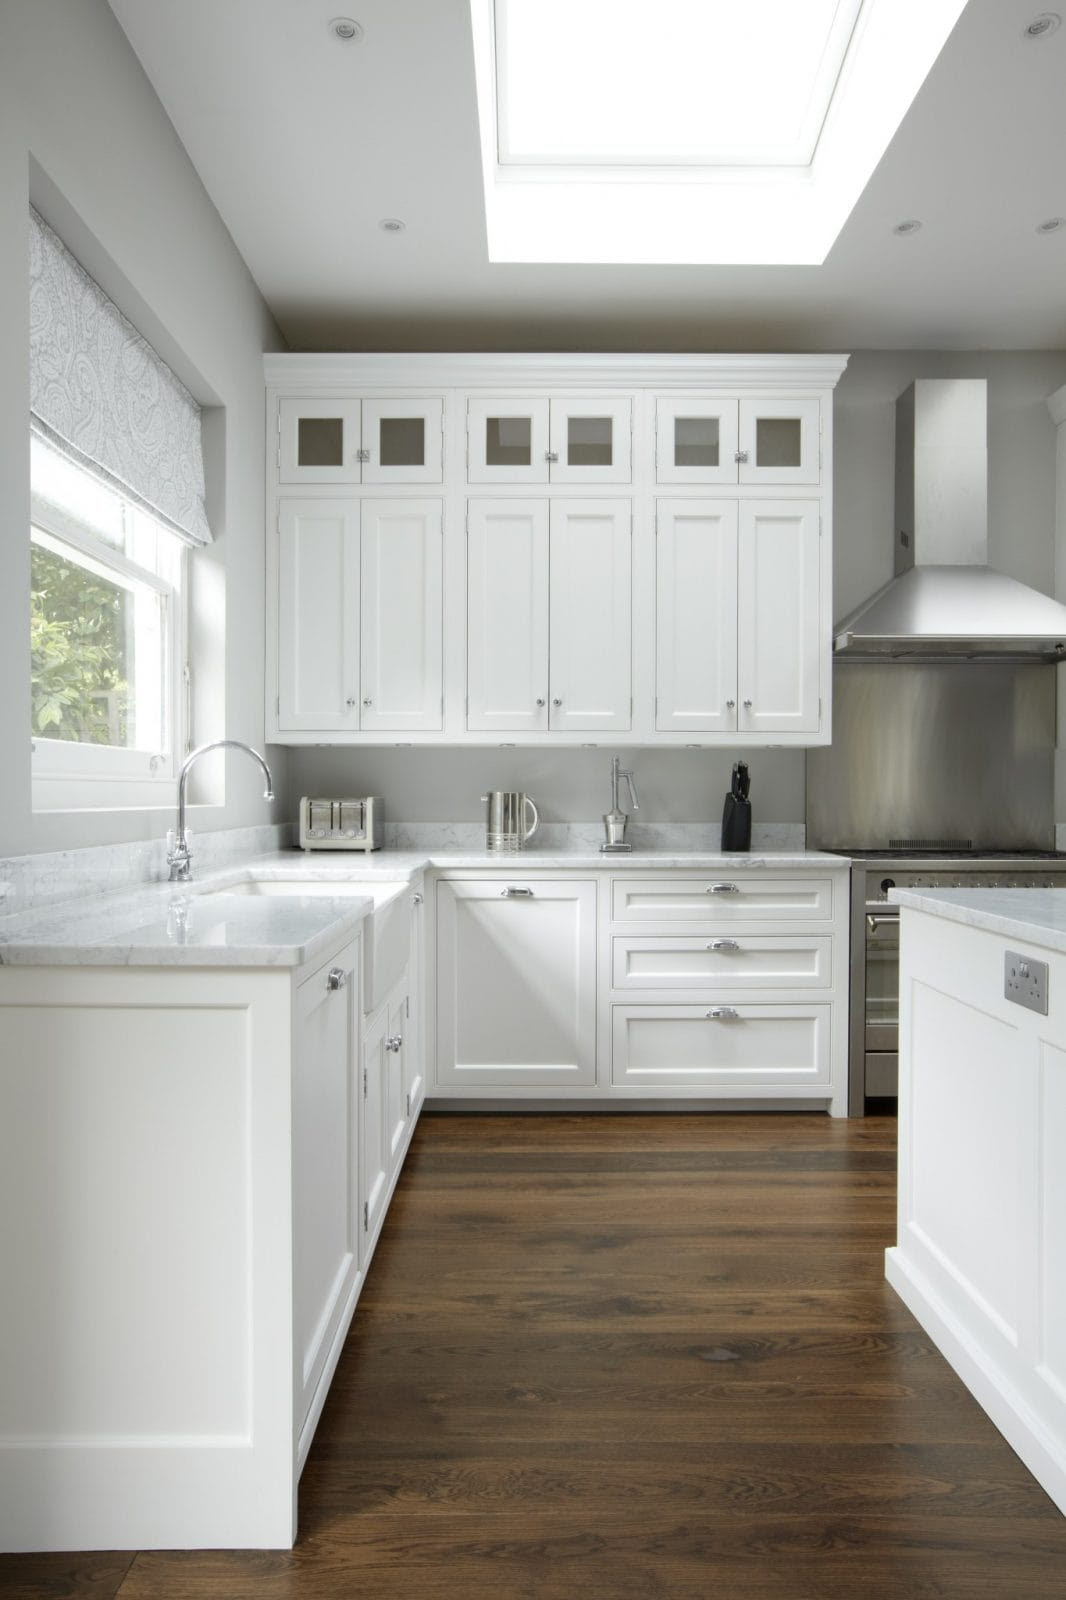 Contemporary Kitchens - Direct Kitchens